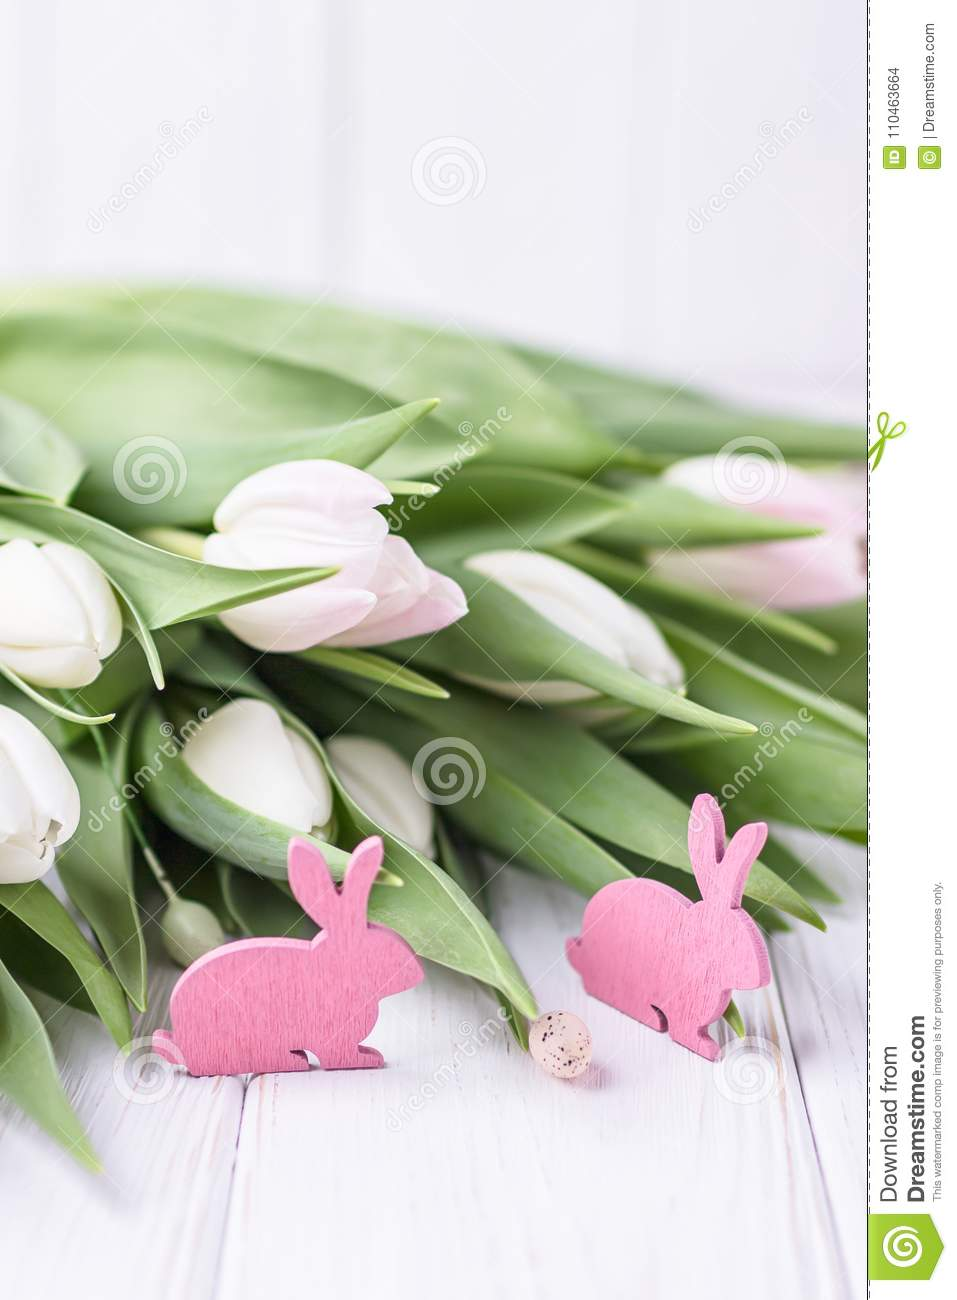 Beautiful spring flowers tulips and pink Easter bunnies on a white background. Free space